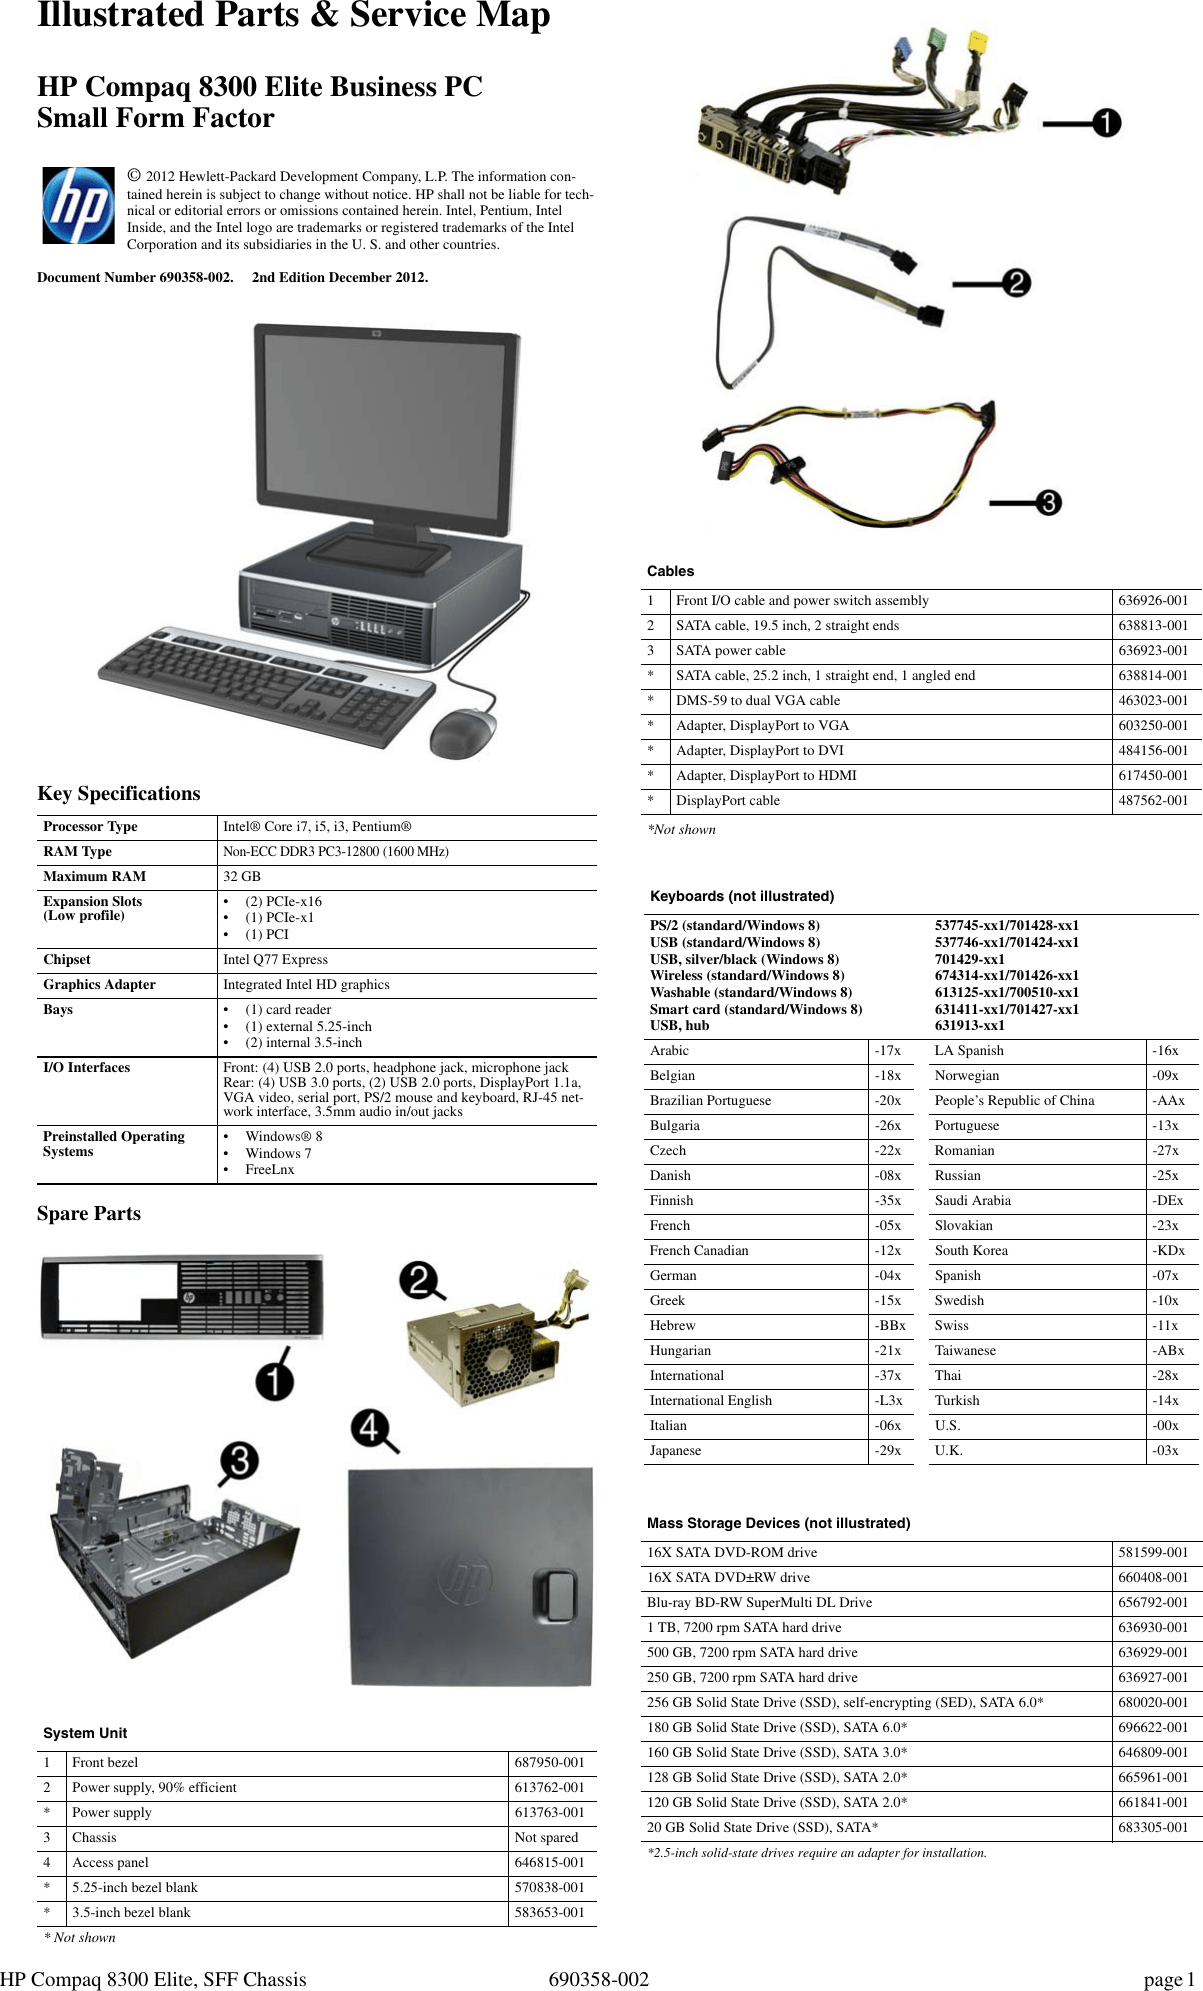 Hp Compaq Elite 8300 Small Form Factor Pc Reference Guide